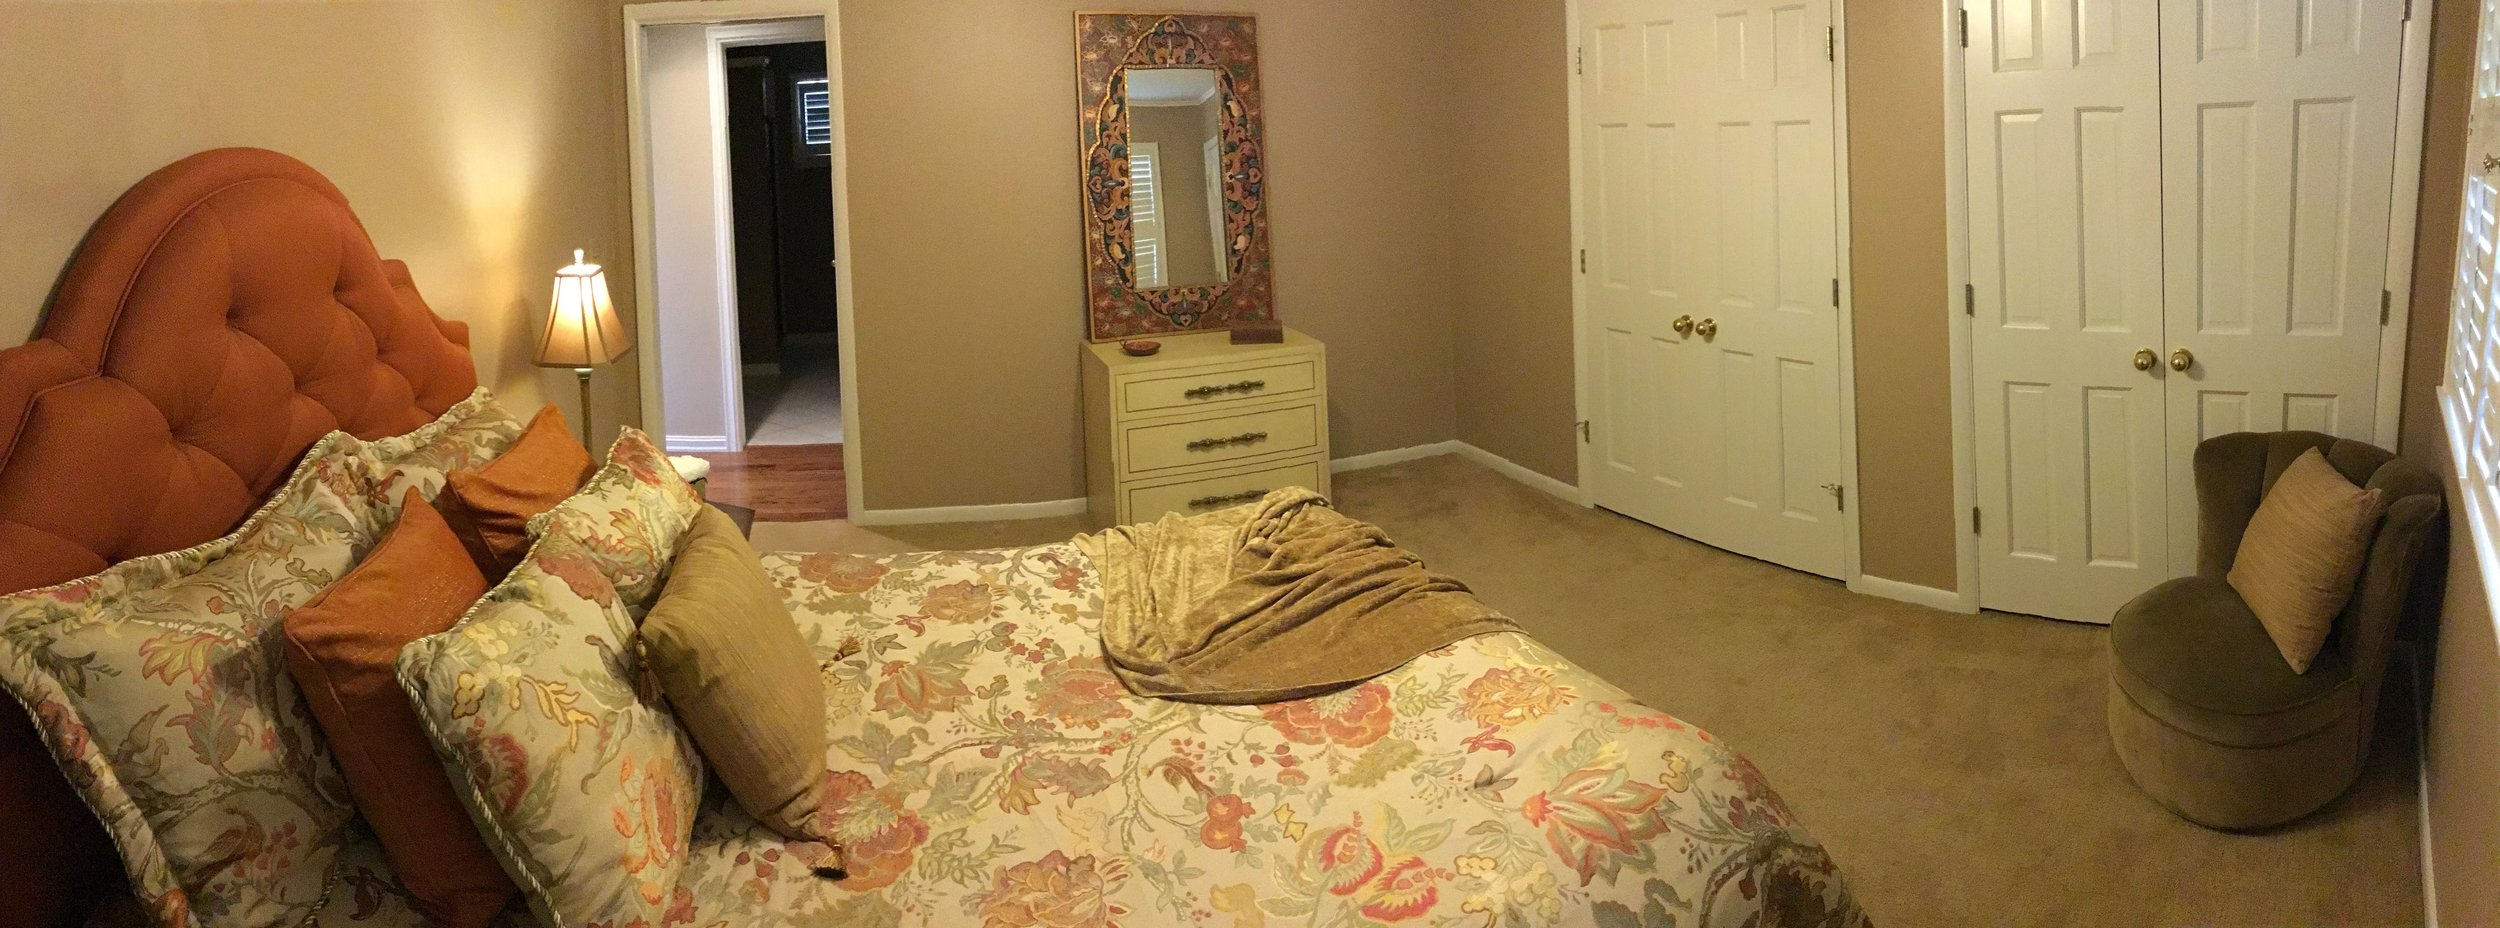 Staging Tulsa - Patrick Henry Ranch Guest Room Pano.JPG